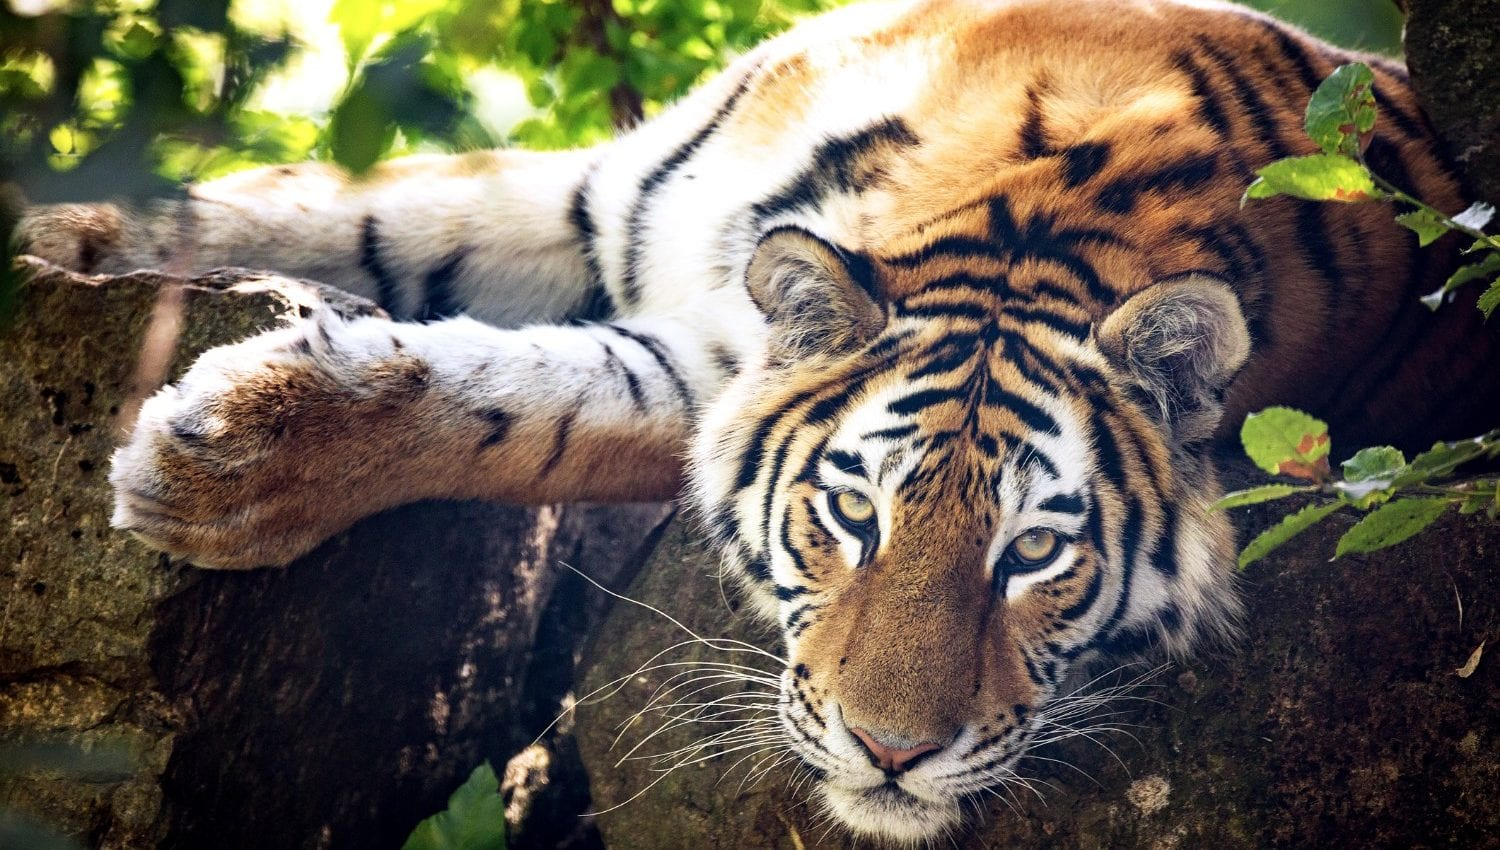 Tiger lying on a branch in a tree